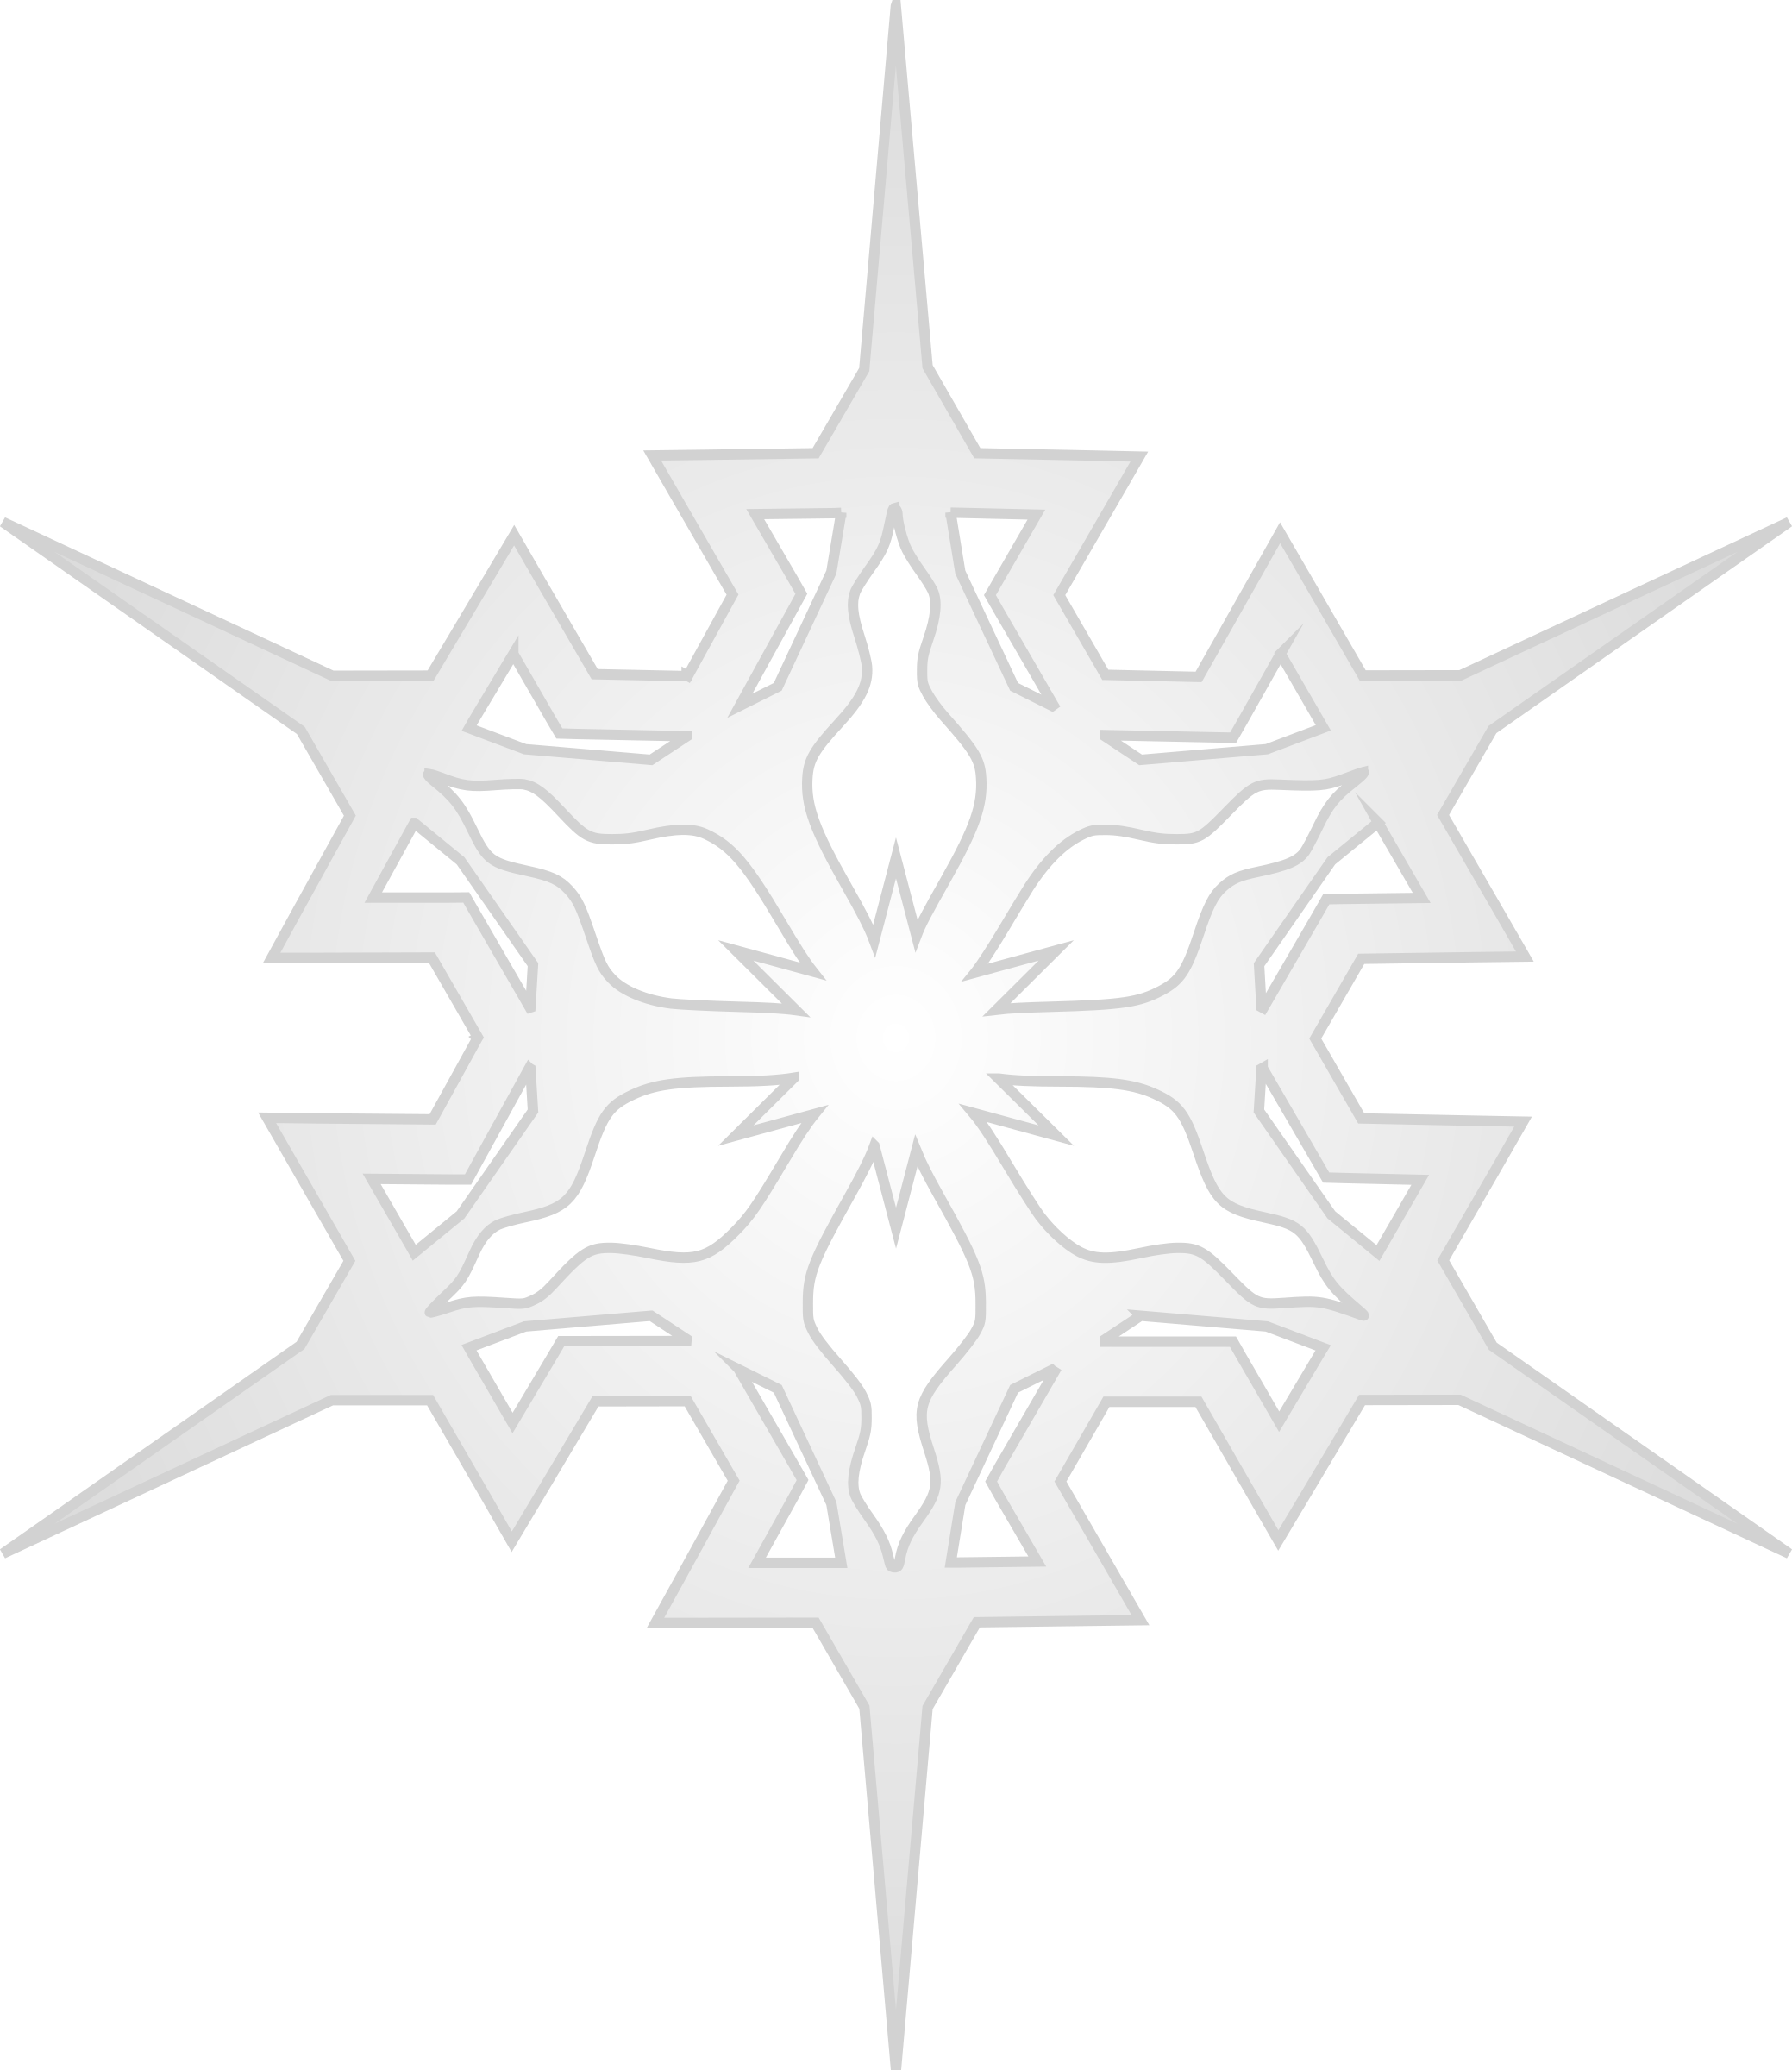 Snowflake 7 by Arvin61r58